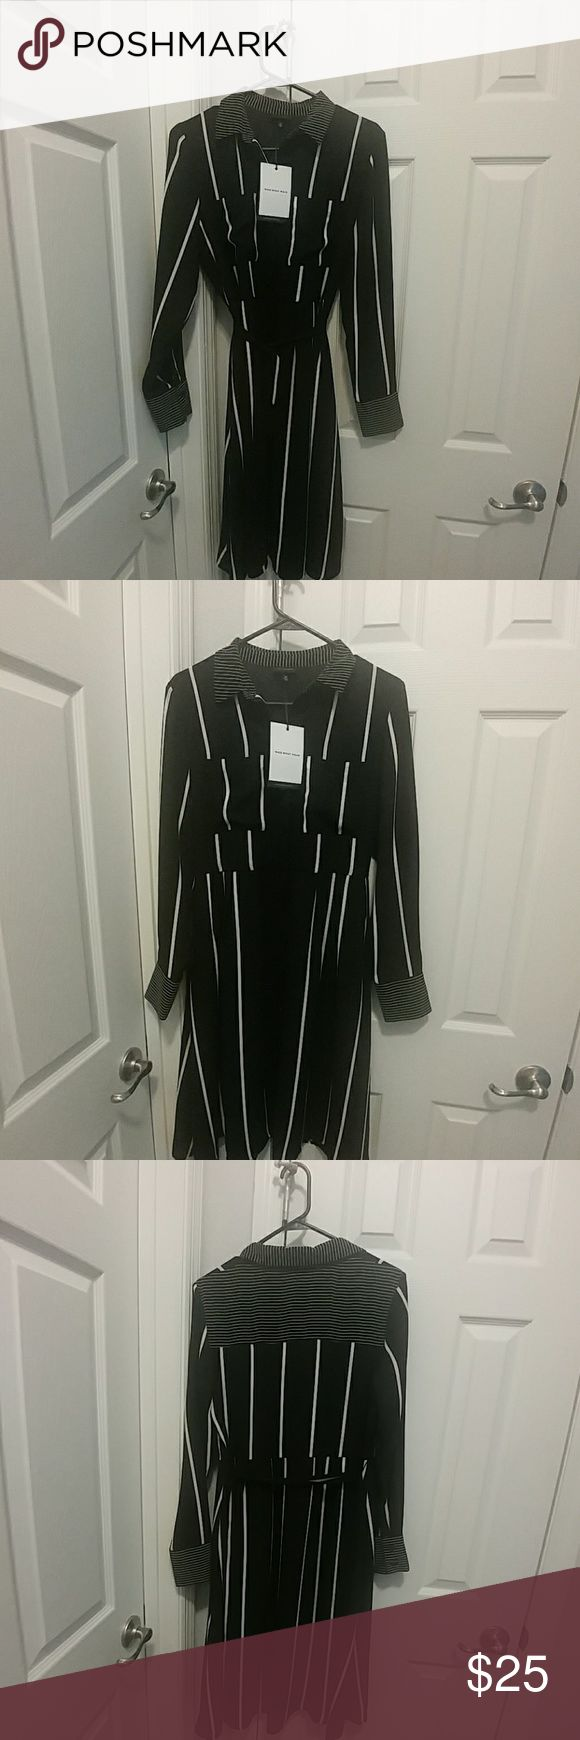 Neautifull Black and White Strap Dress Brand new with Tag great for work or Special occasion Dresses Long Sleeve